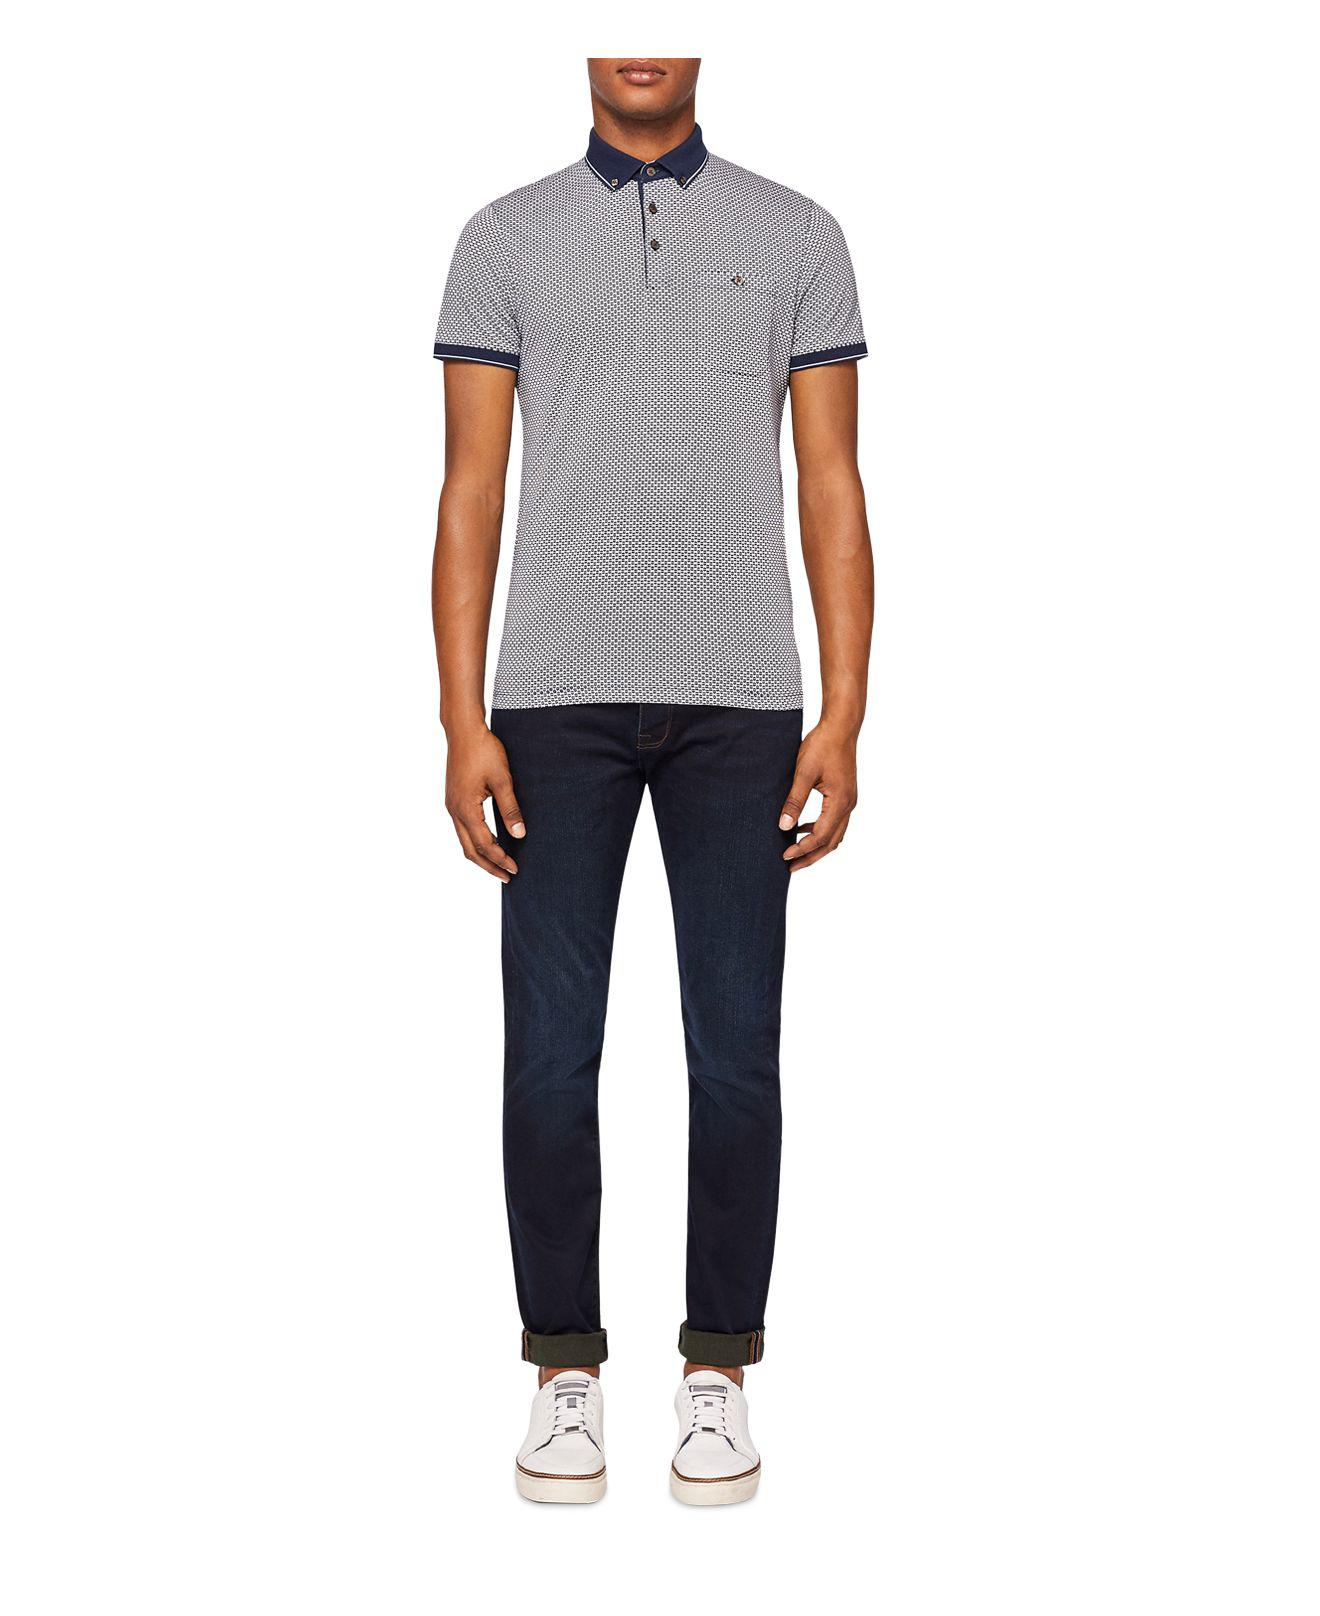 6679fdde001178 Lyst - Ted Baker Scamp Straight Fit Jeans In Dark Wash in Blue for Men